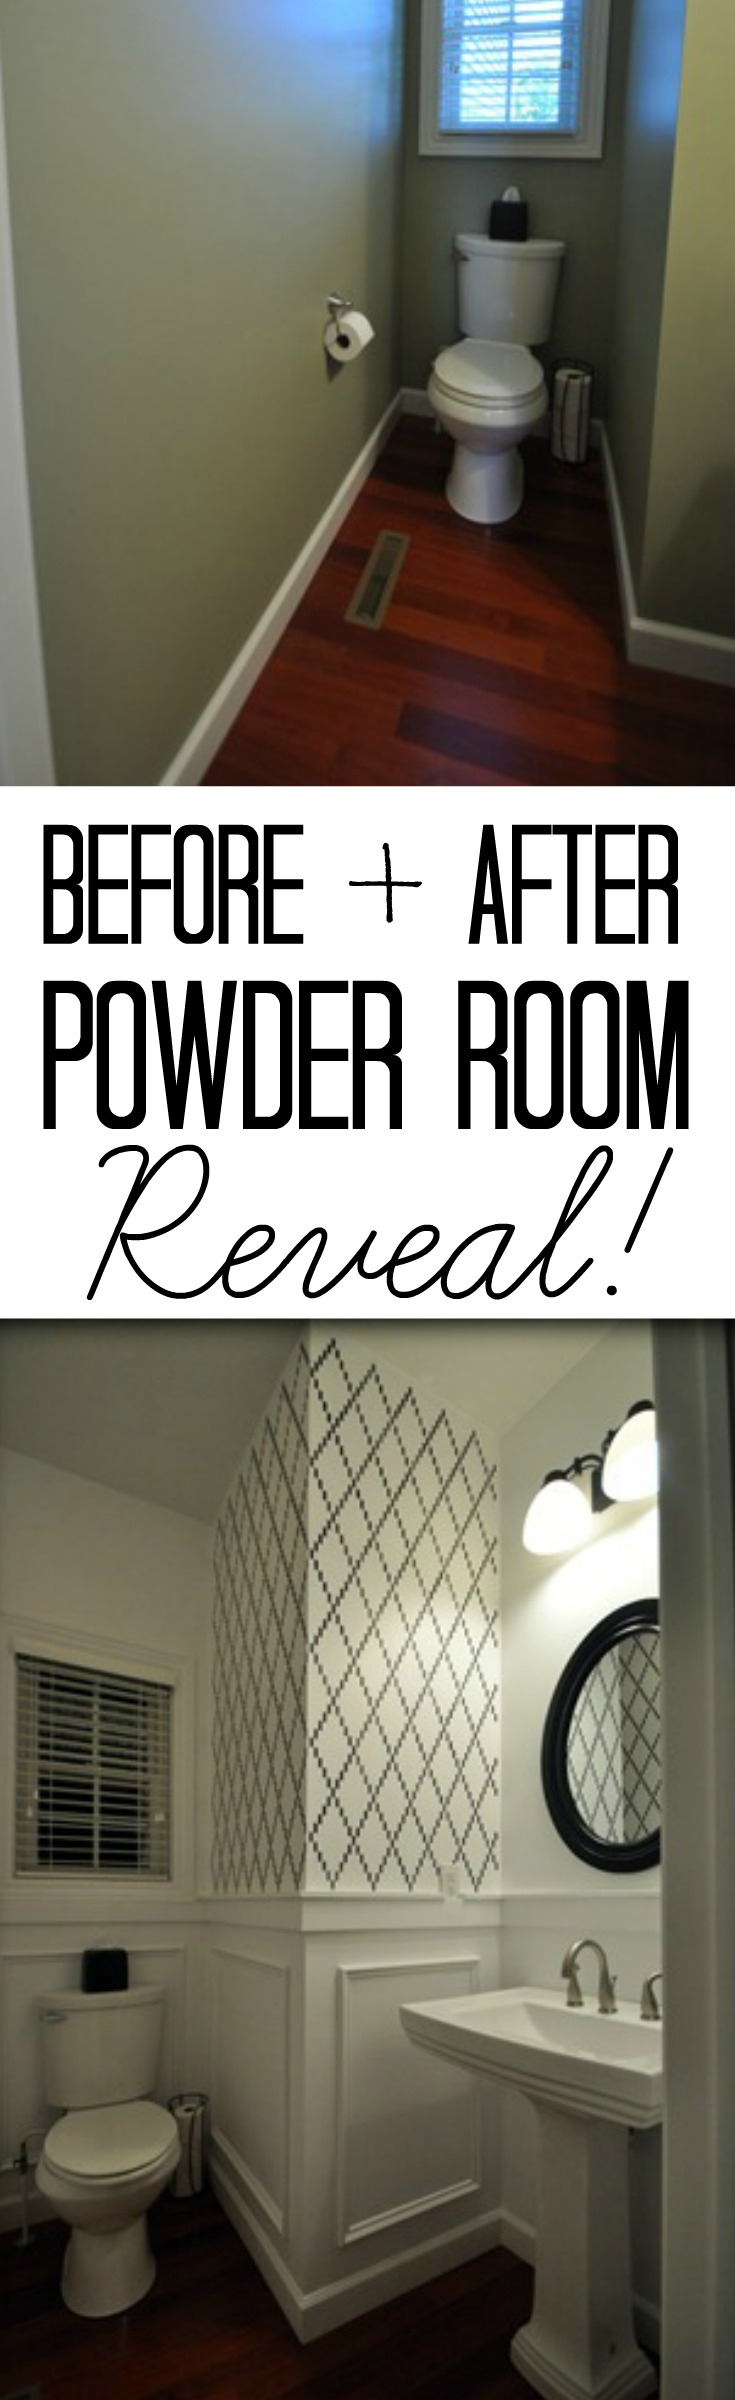 Powder Room Reveal.jpg